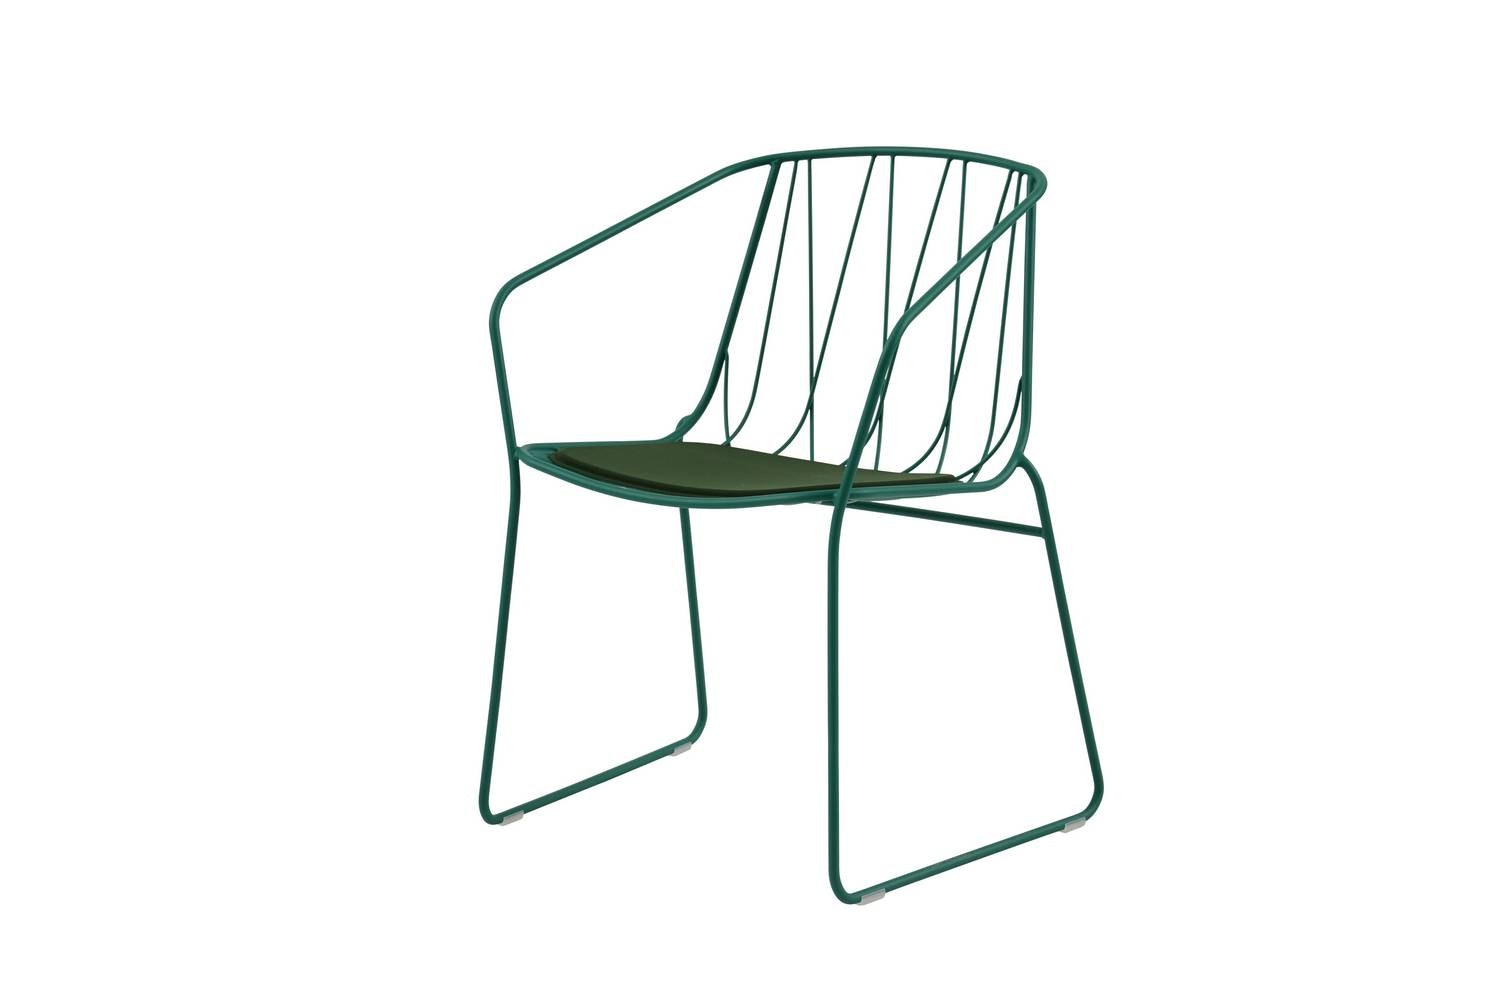 Chee Chair with Arms by Tom Fereday